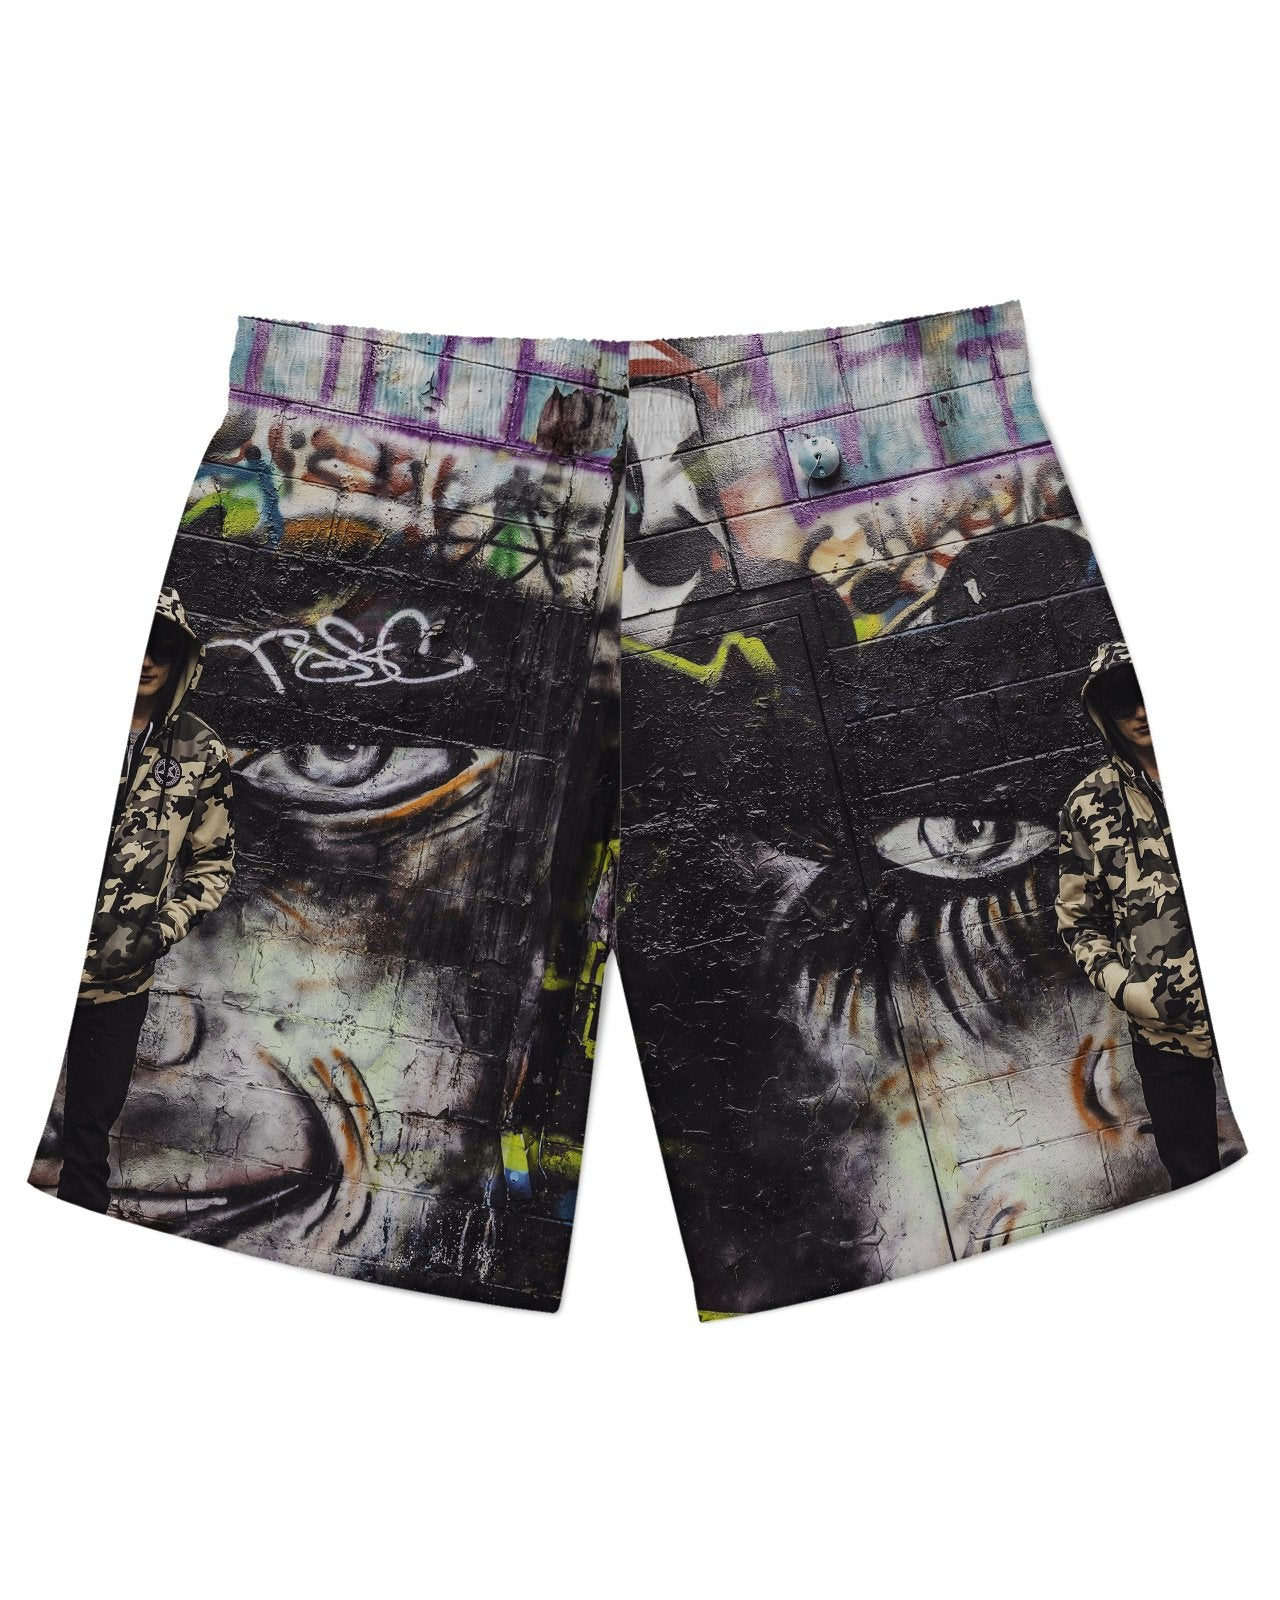 Dark Boy Athletic Shorts